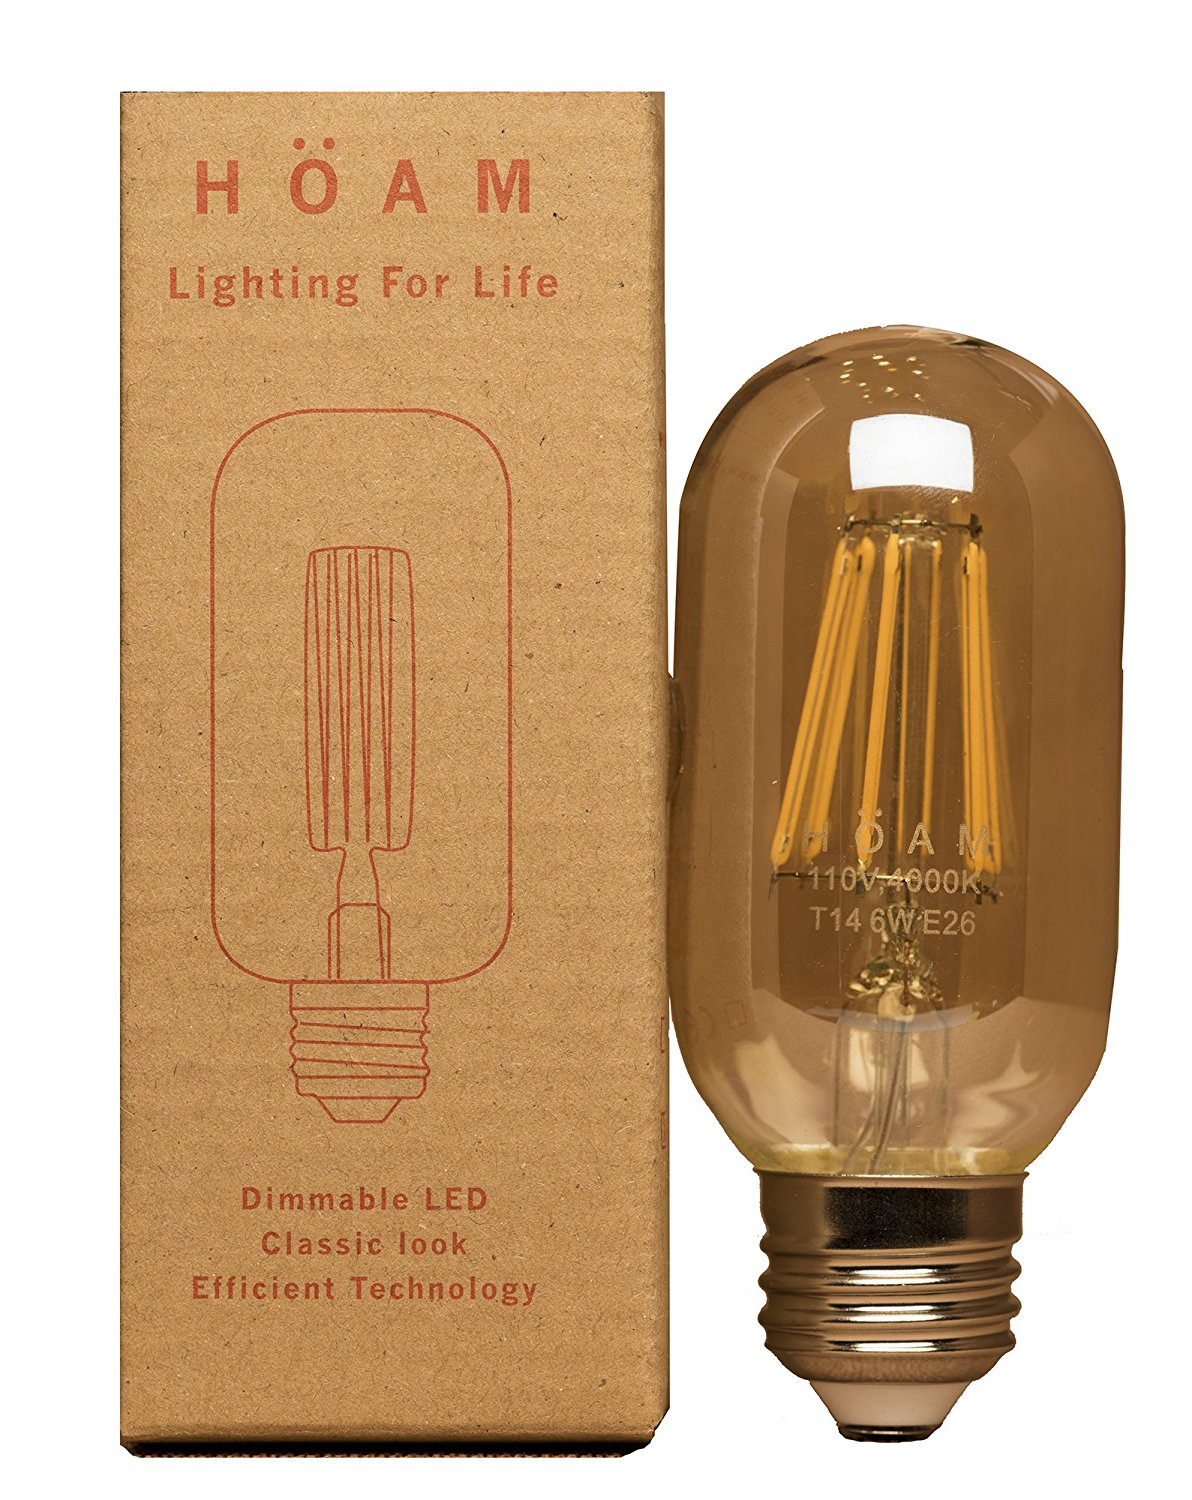 Cheap vintage style light fixtures find vintage style light get quotations vintage edison style dimmable led light bulb 6w 60w incandescent equivalent 4000k neutral arubaitofo Gallery